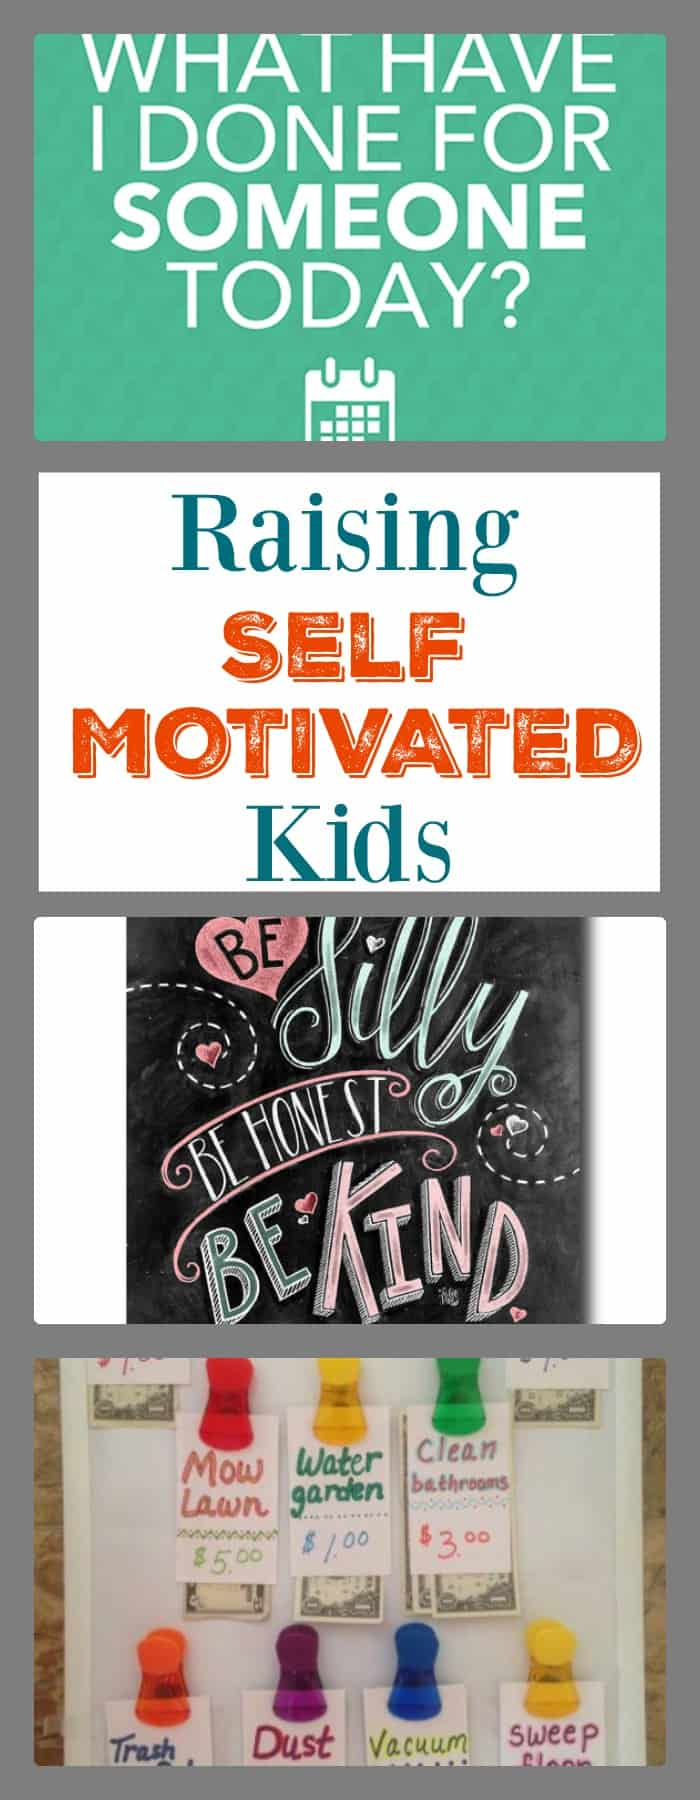 Parenting ideas- raising self motivated kids